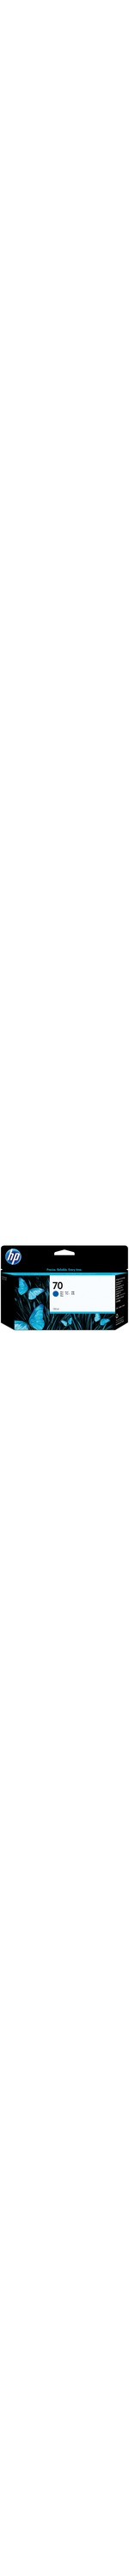 HP No. 70 Ink Cartridge - Blue